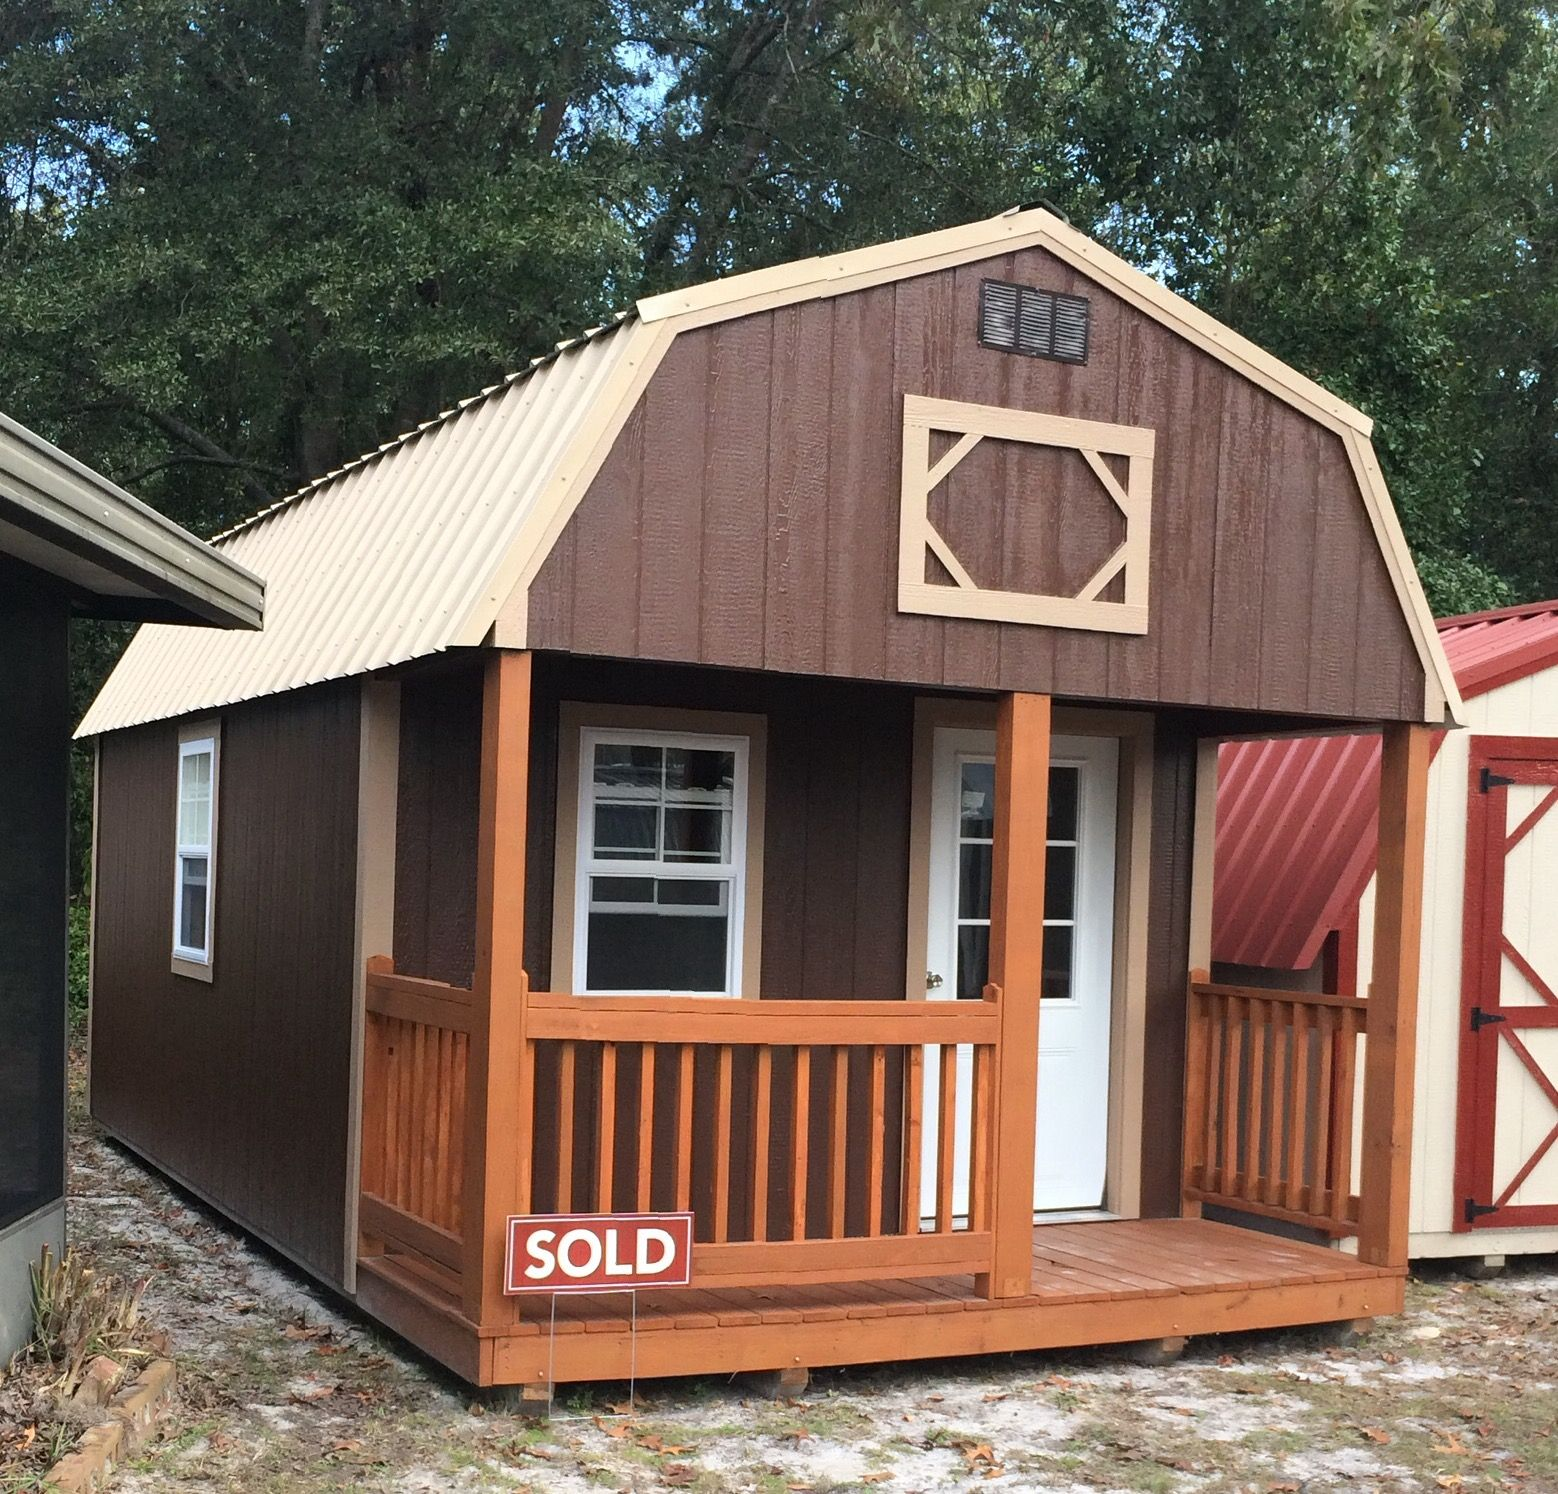 Lofted Barn Cabin With 2 Lofts 12x24 Wood Building Painted In Our Standard Colors Or Your Choice By Coas Portable Buildings Sunrise Building Lofted Barn Cabin